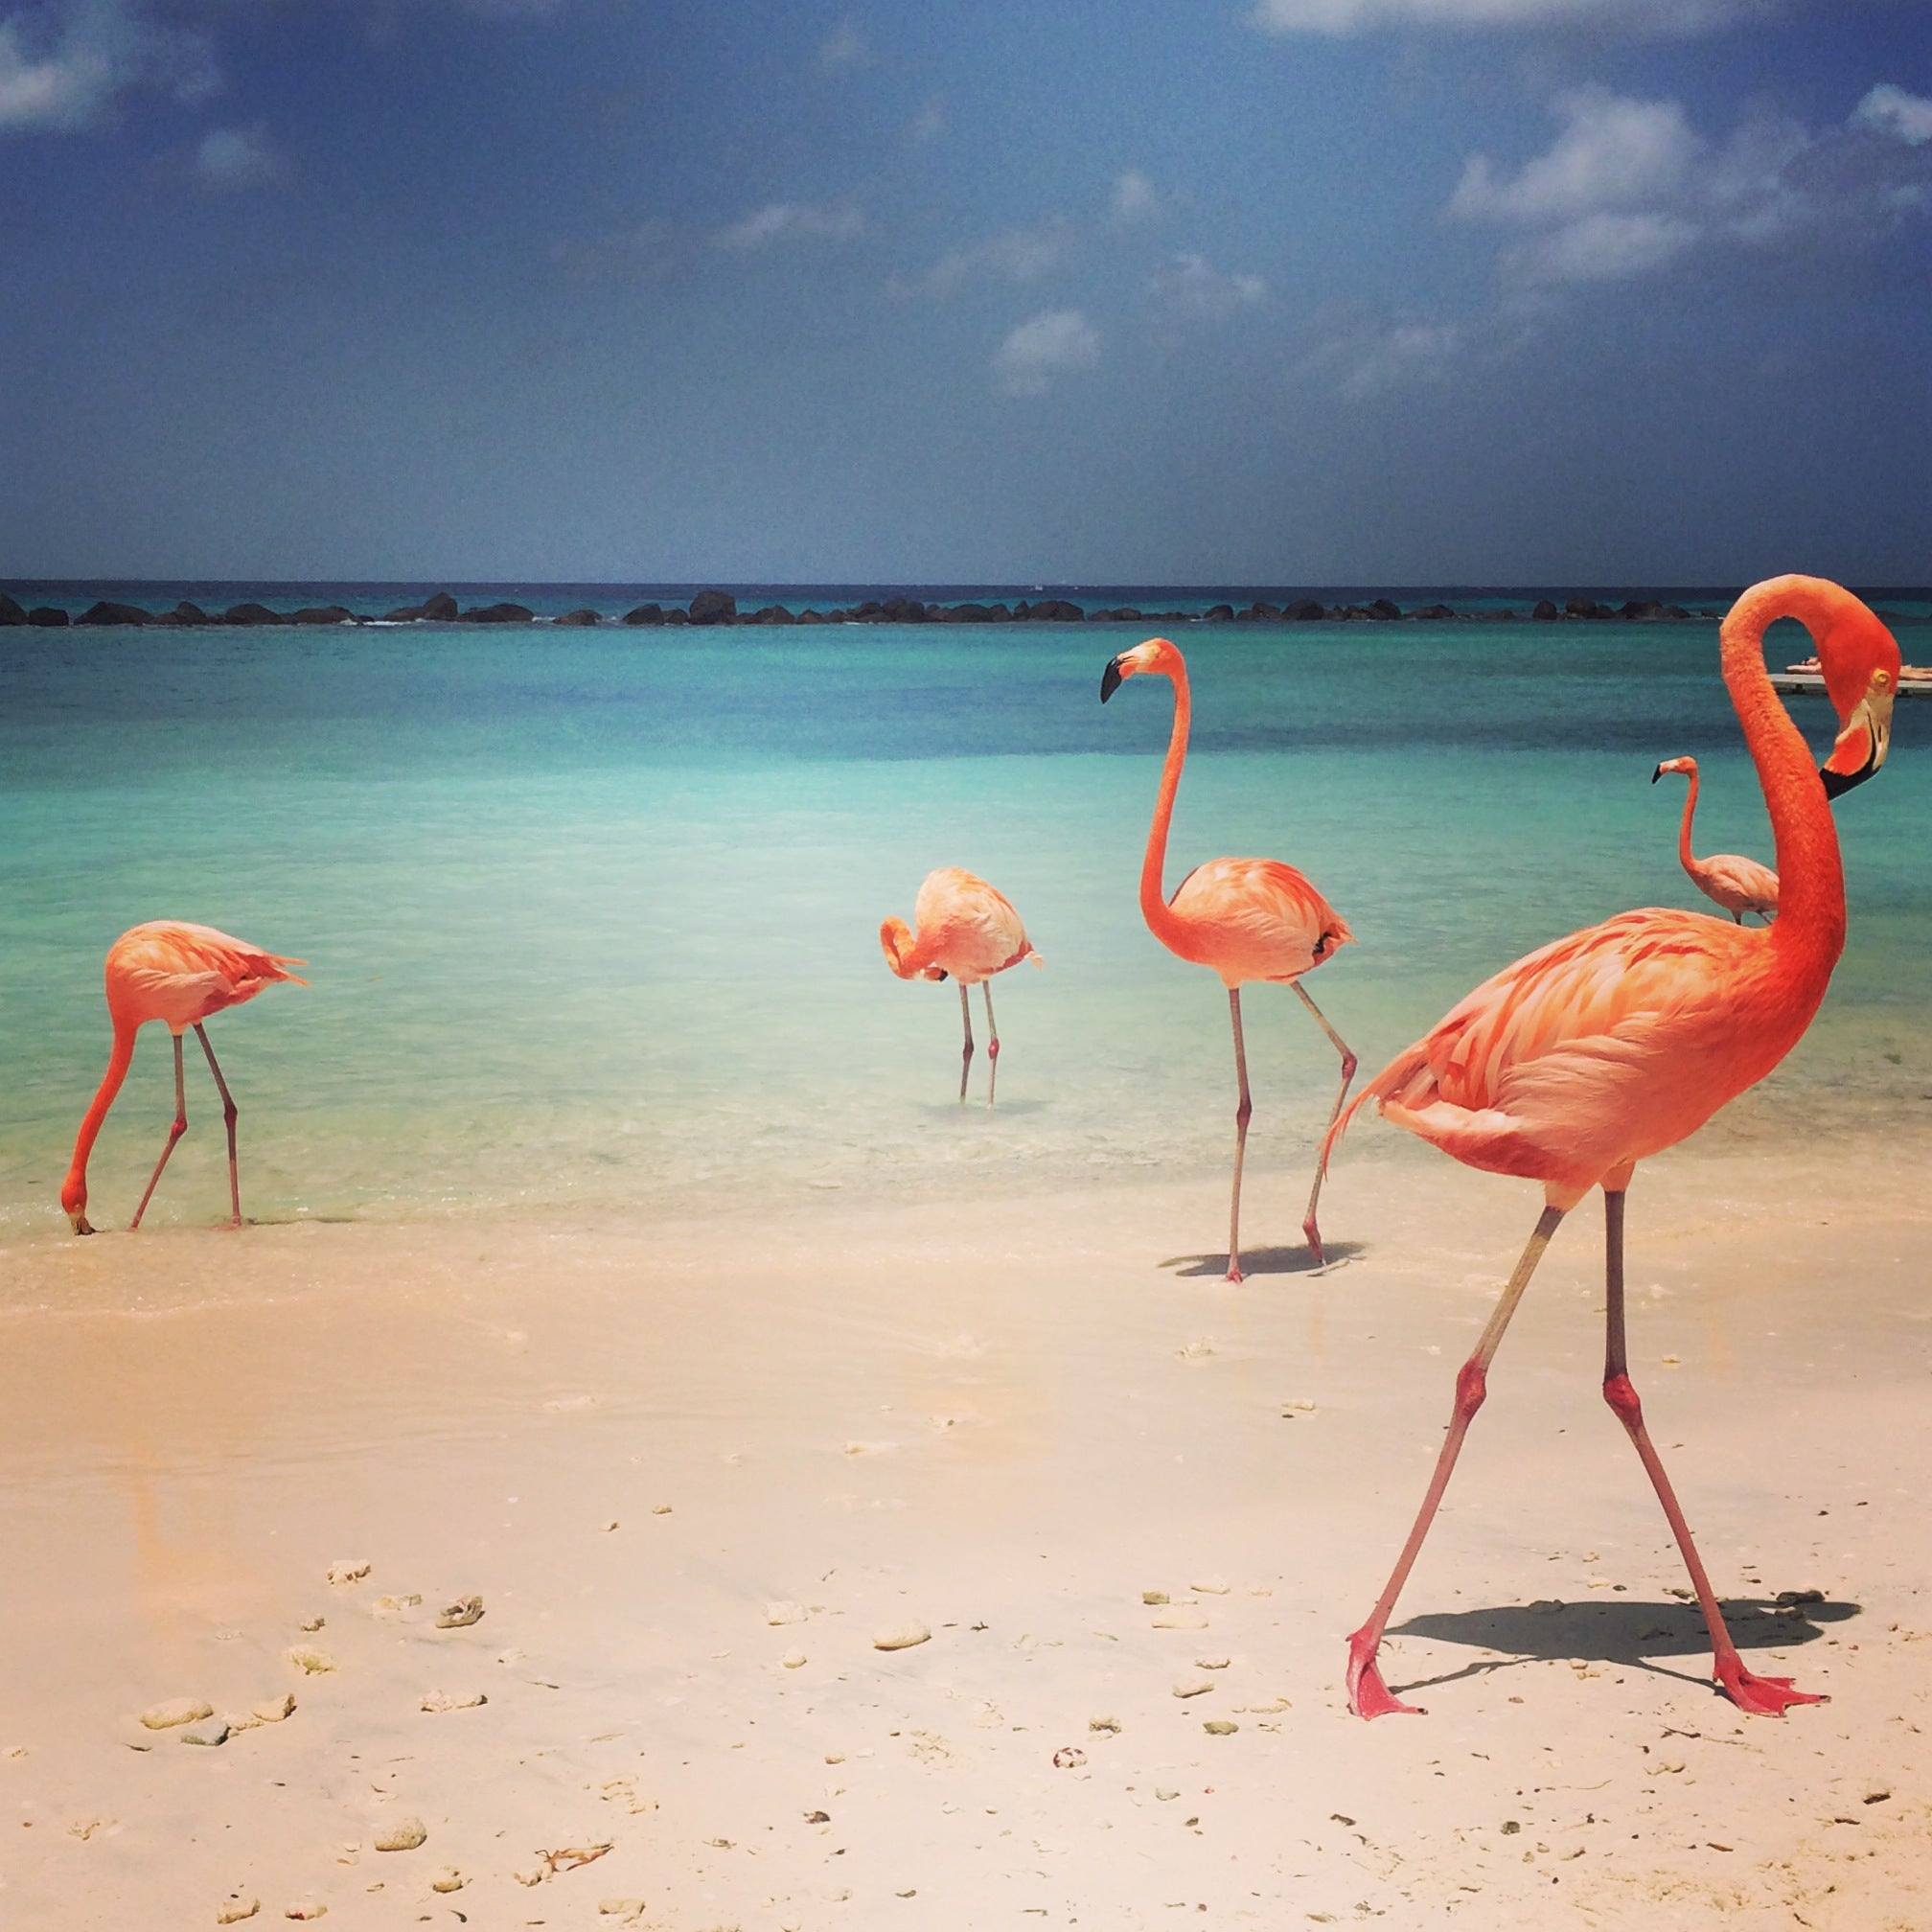 Flamingo Beach Aruba by KARMA for a cure